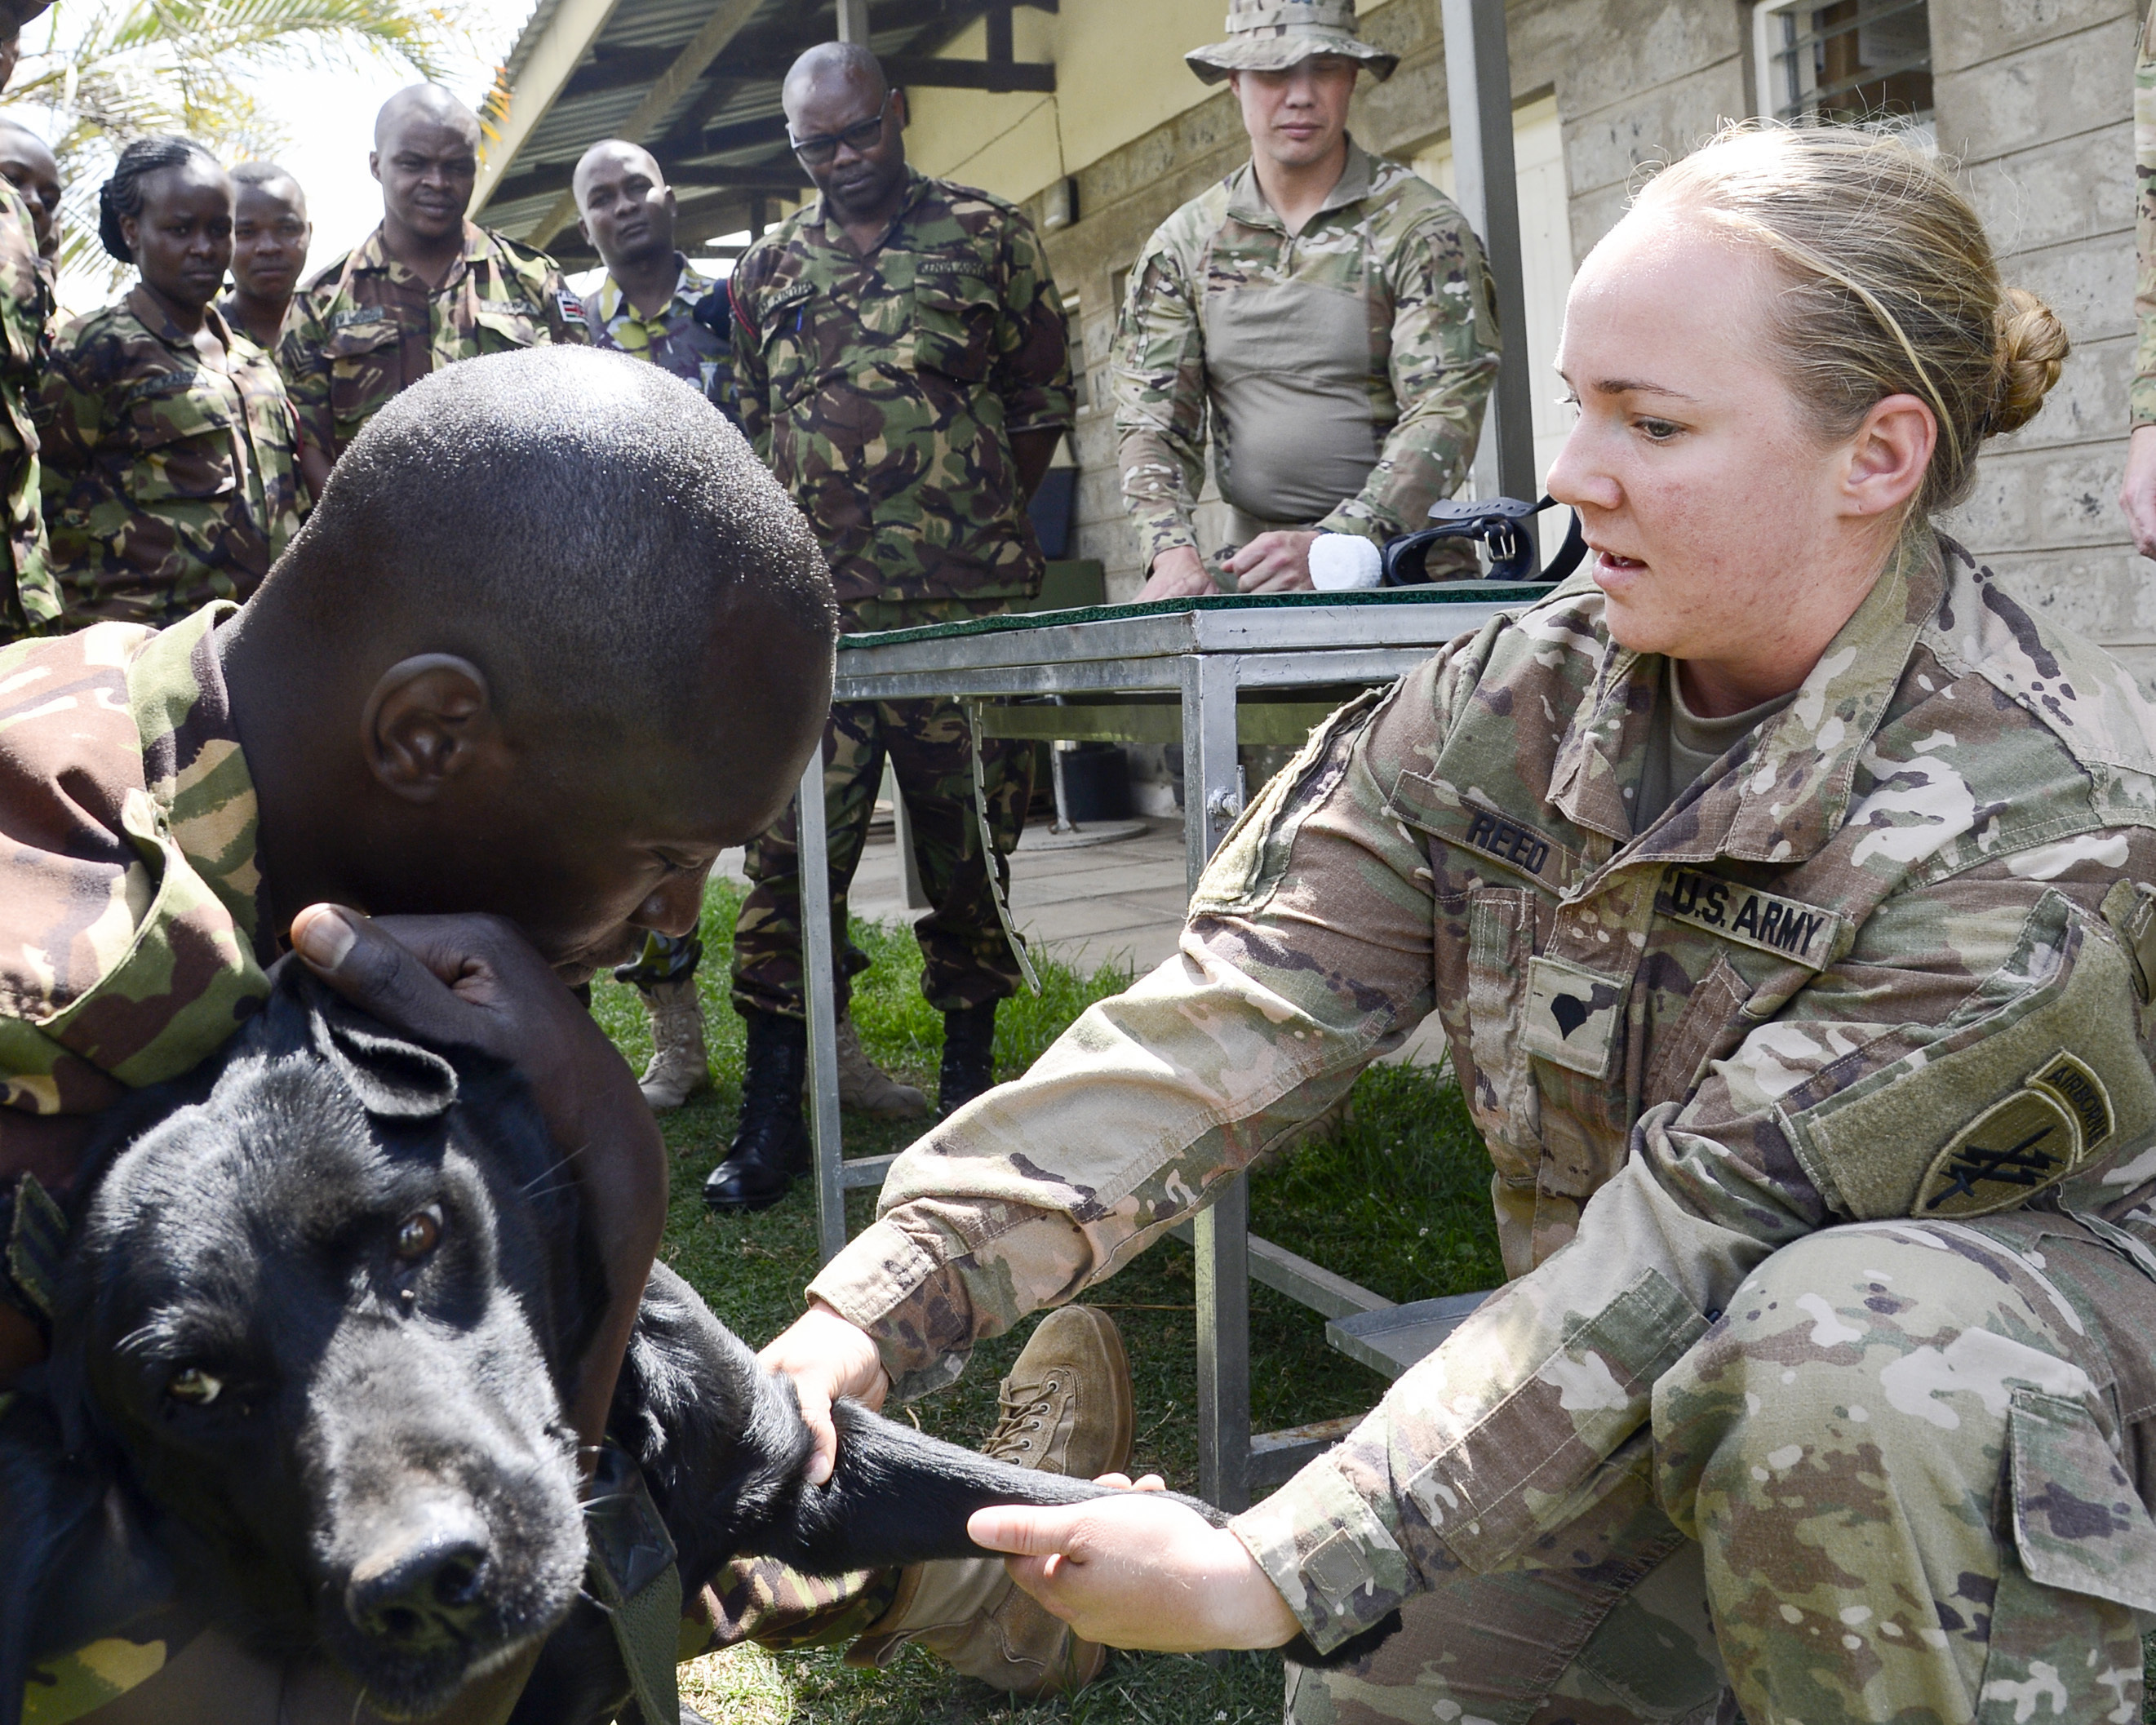 U.S. Army Spc. Lauren Reed, a veterinary technician with the 404th Civil Affairs Battalion Functional Specialty Team, demonstrates the proper restraint technique to administer a catheter to memebers of the Kenya Defense Force's 1st Canine Regiment during a Military Working Dog knowledge exchange in Nairobi, Kenya, August 7, 2018. The exchange gave a chance for American and Kenyan forces to learn and work with each other to have a better understanding of each other's capabilities. (U.S. Navy Photo by Mass Communication Specialist 2nd Class Timothy M. Ahearn)